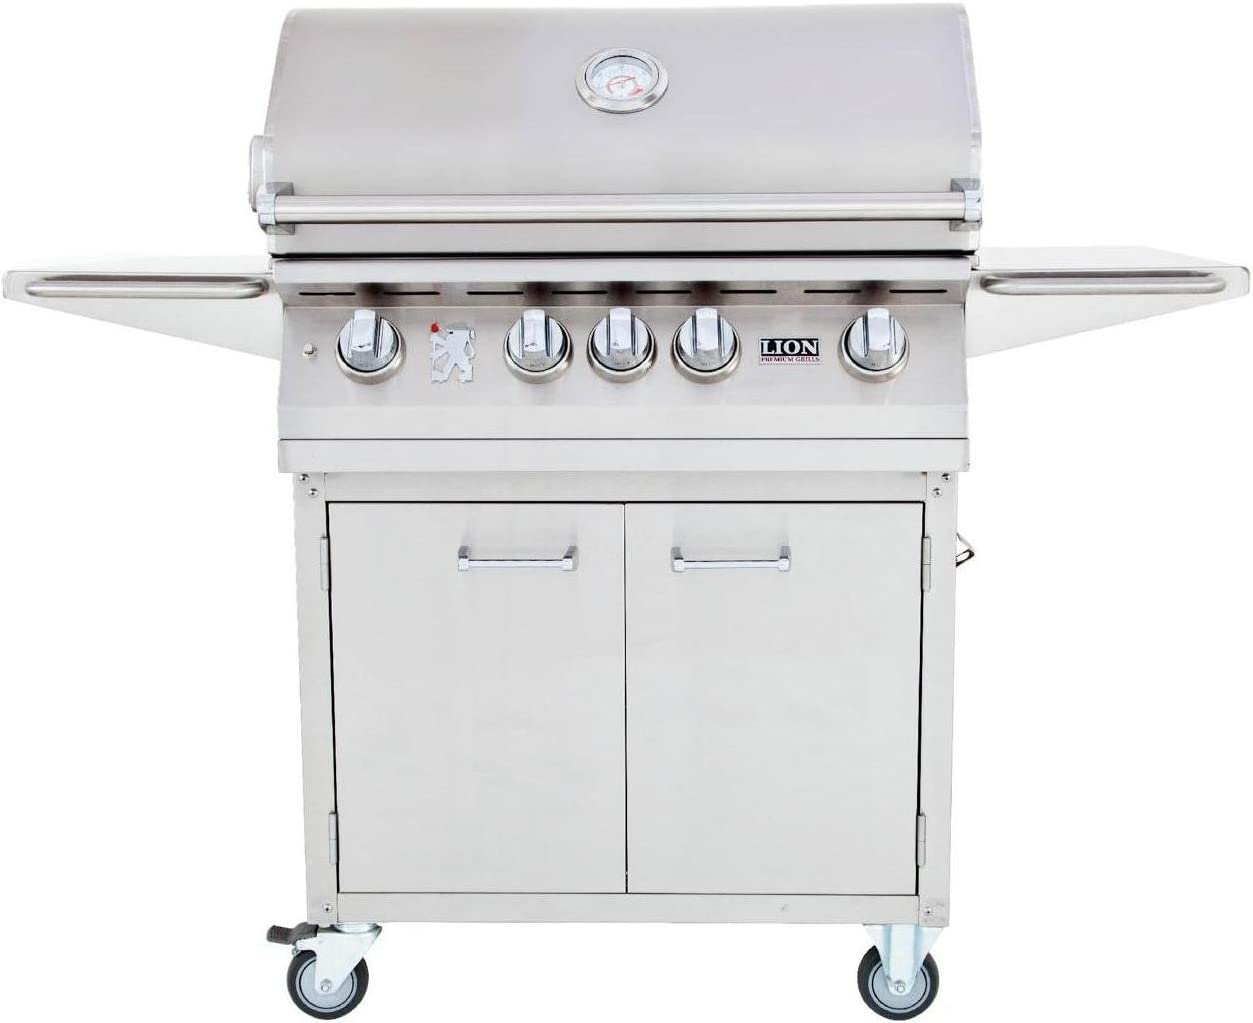 Lion 32-Inch Gas Grill - L75000 Stainless Steel Freestanding Natural Gas